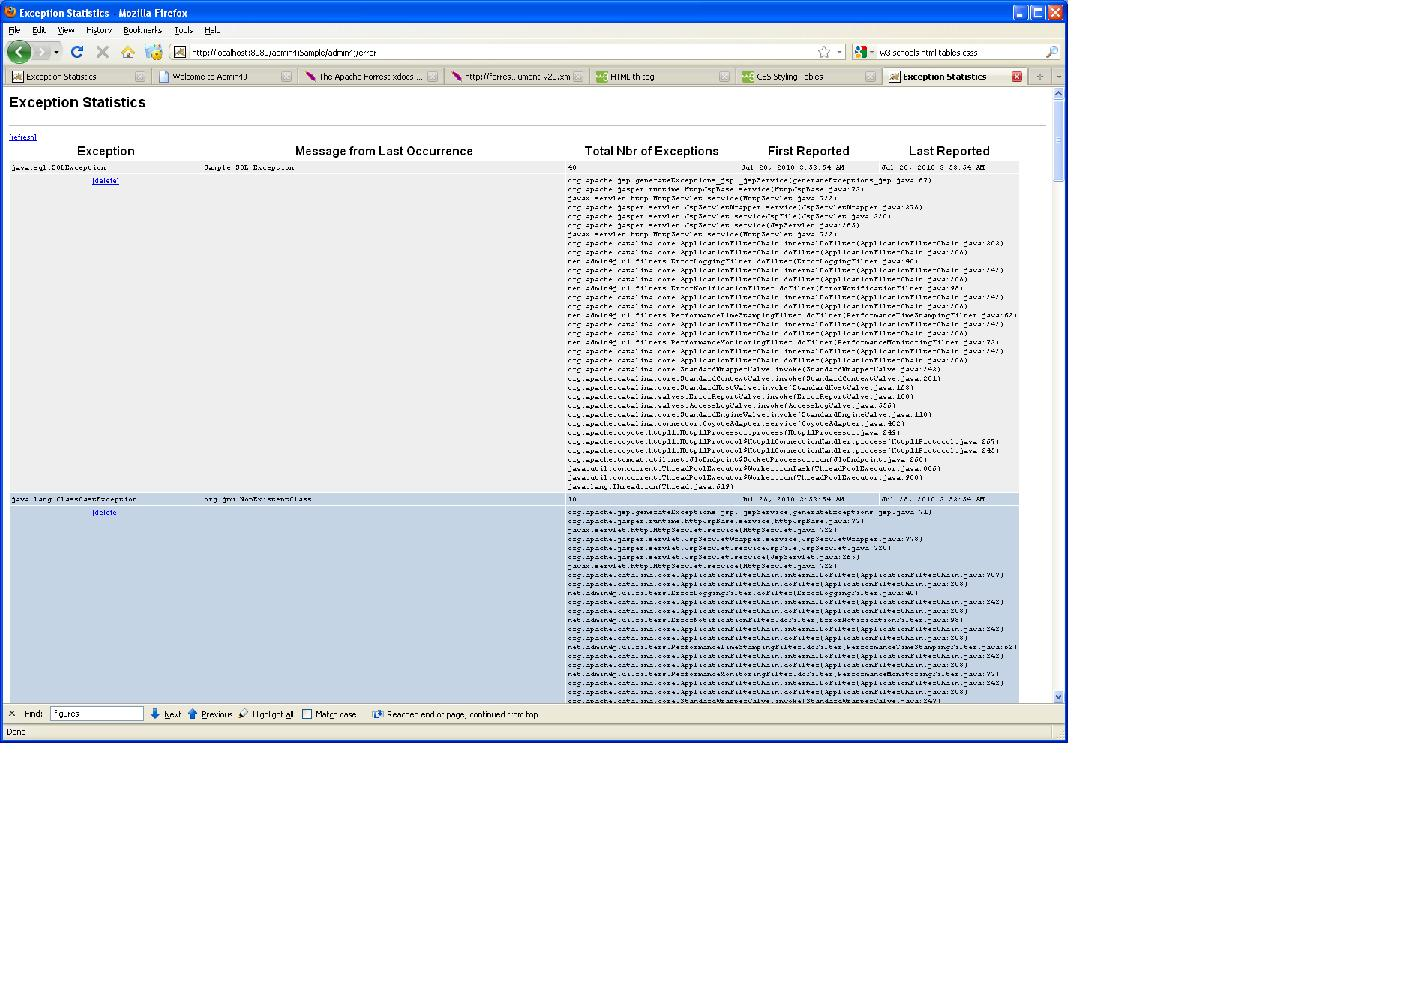 Admin4J Exception Summary Screen shot